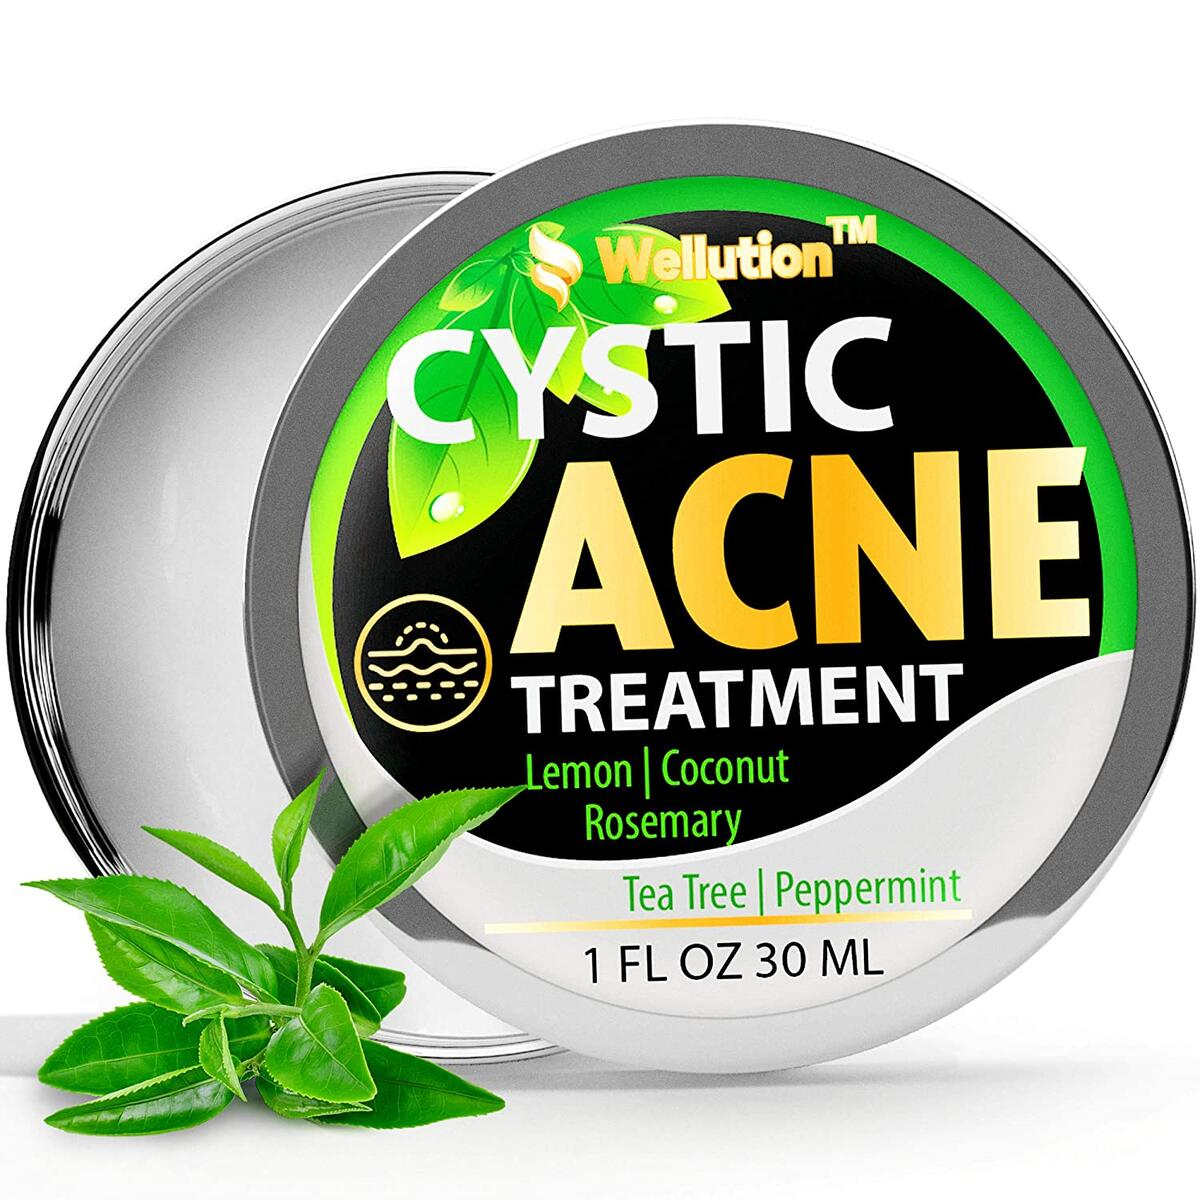 Cystic Acne Treatment and Acne Scar Remover - Made in USA - Effective Face & Body Severe Acne Cleanser with Tea Tree Oil - Prevent Future Breakouts - Natural Acne Spot Pimple Cream